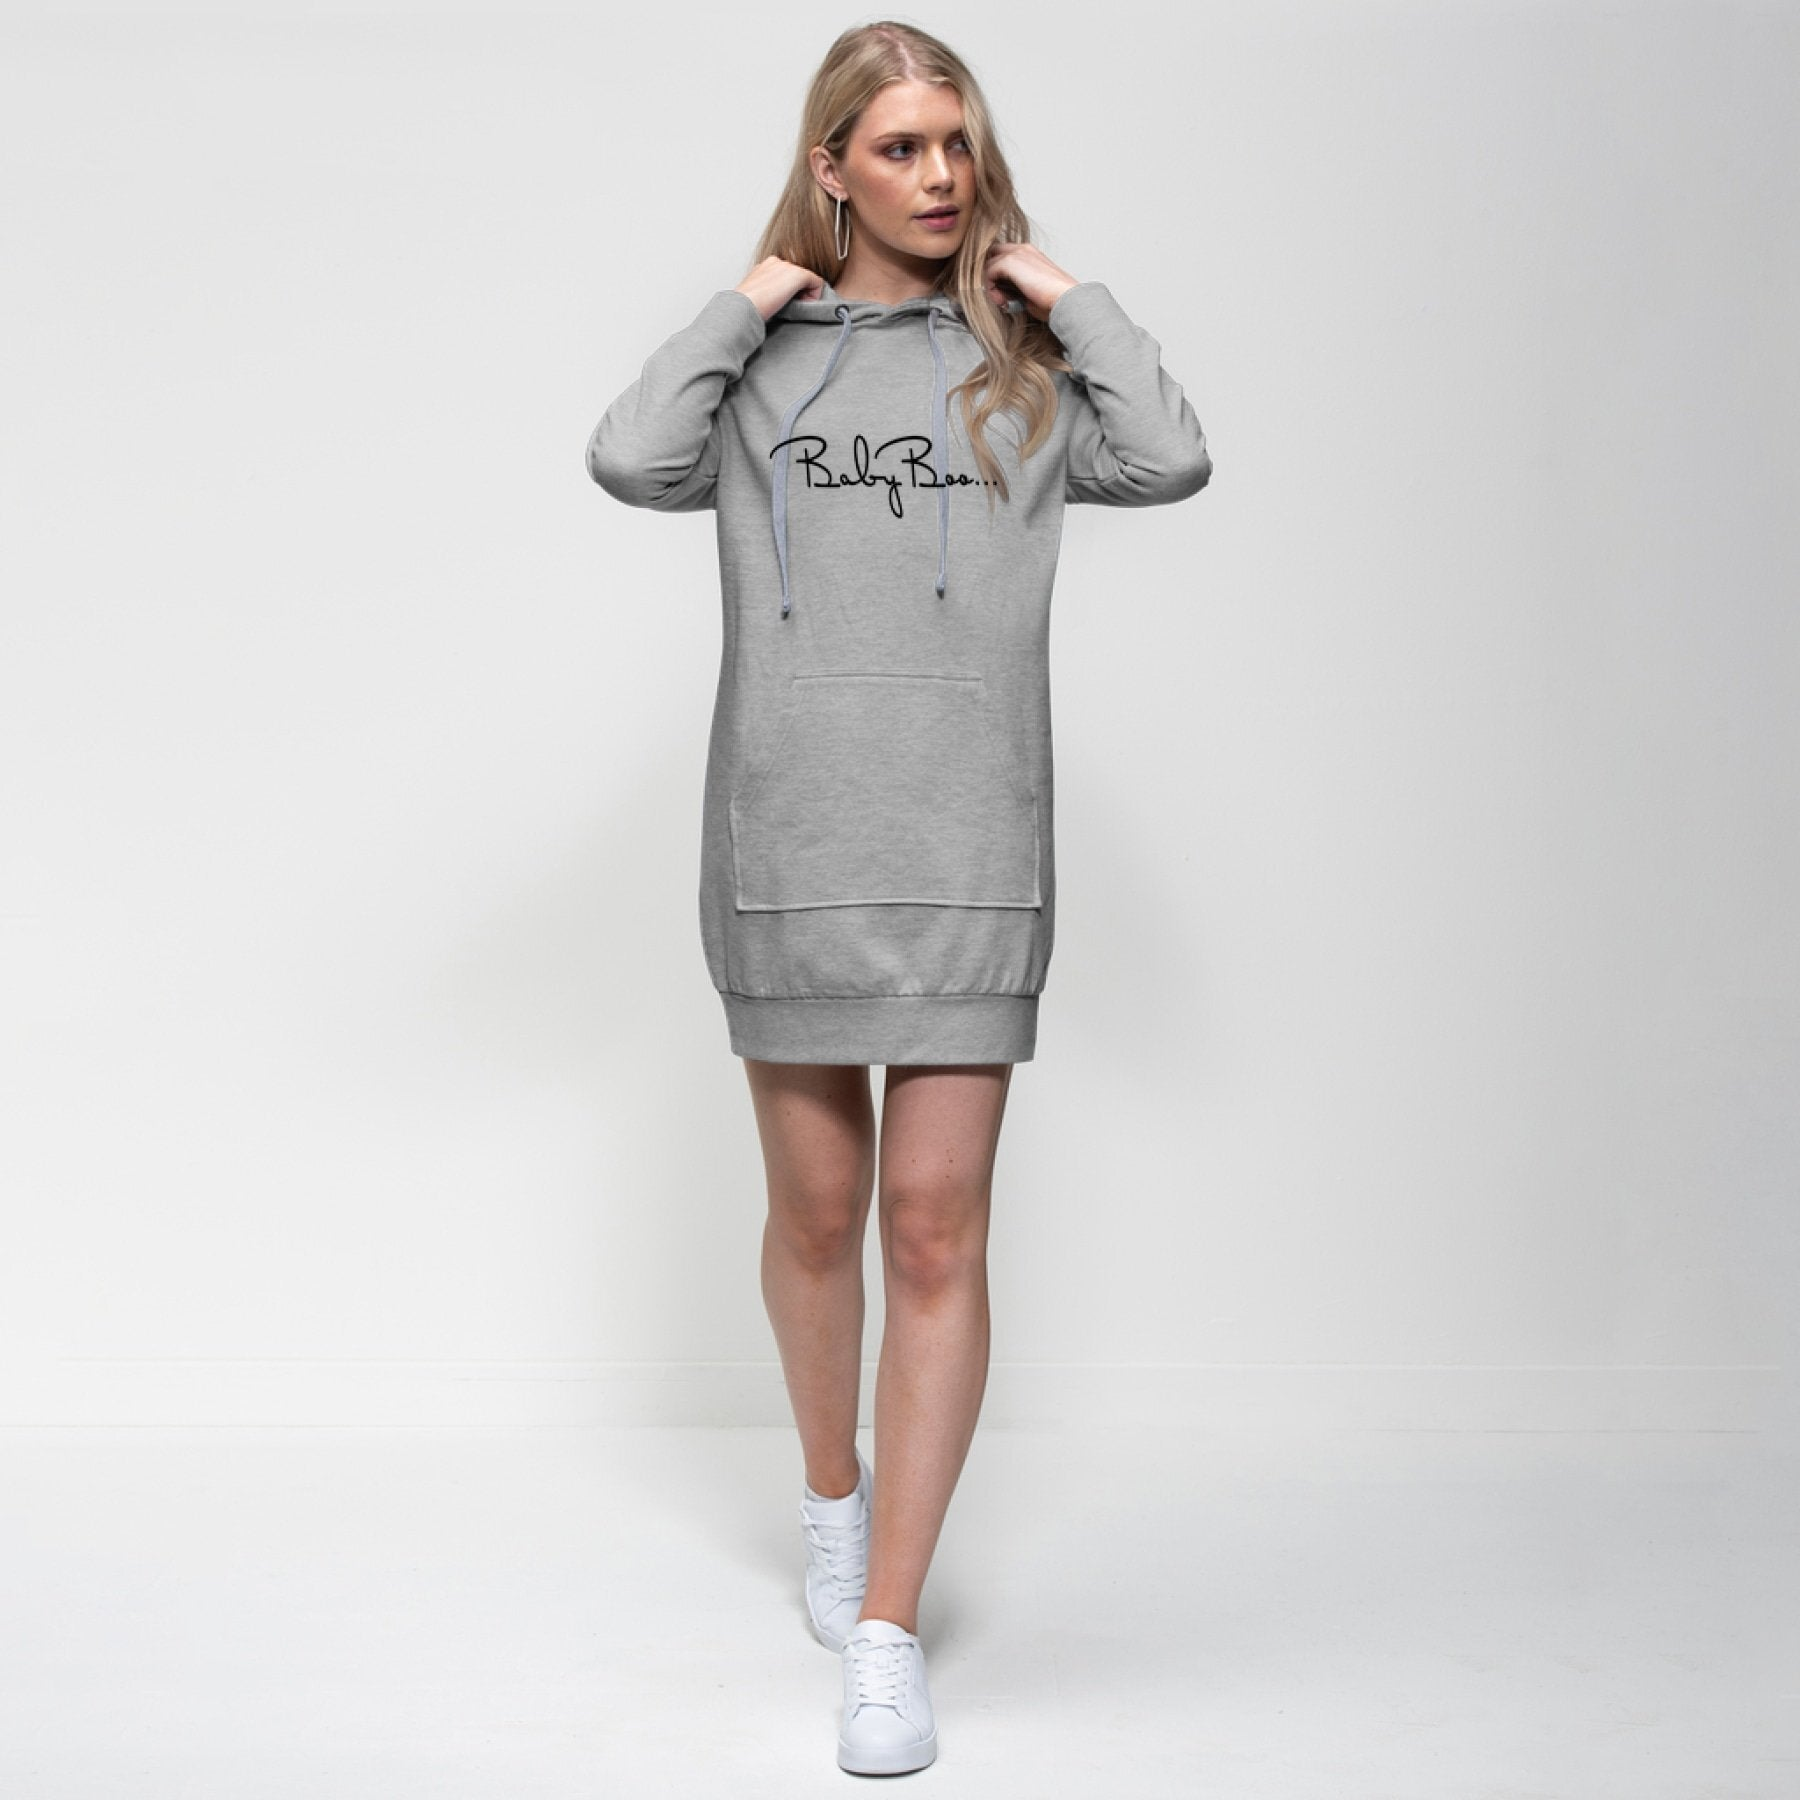 Baby Boo Black Graphic Style Premium Adult Hoodie Dress